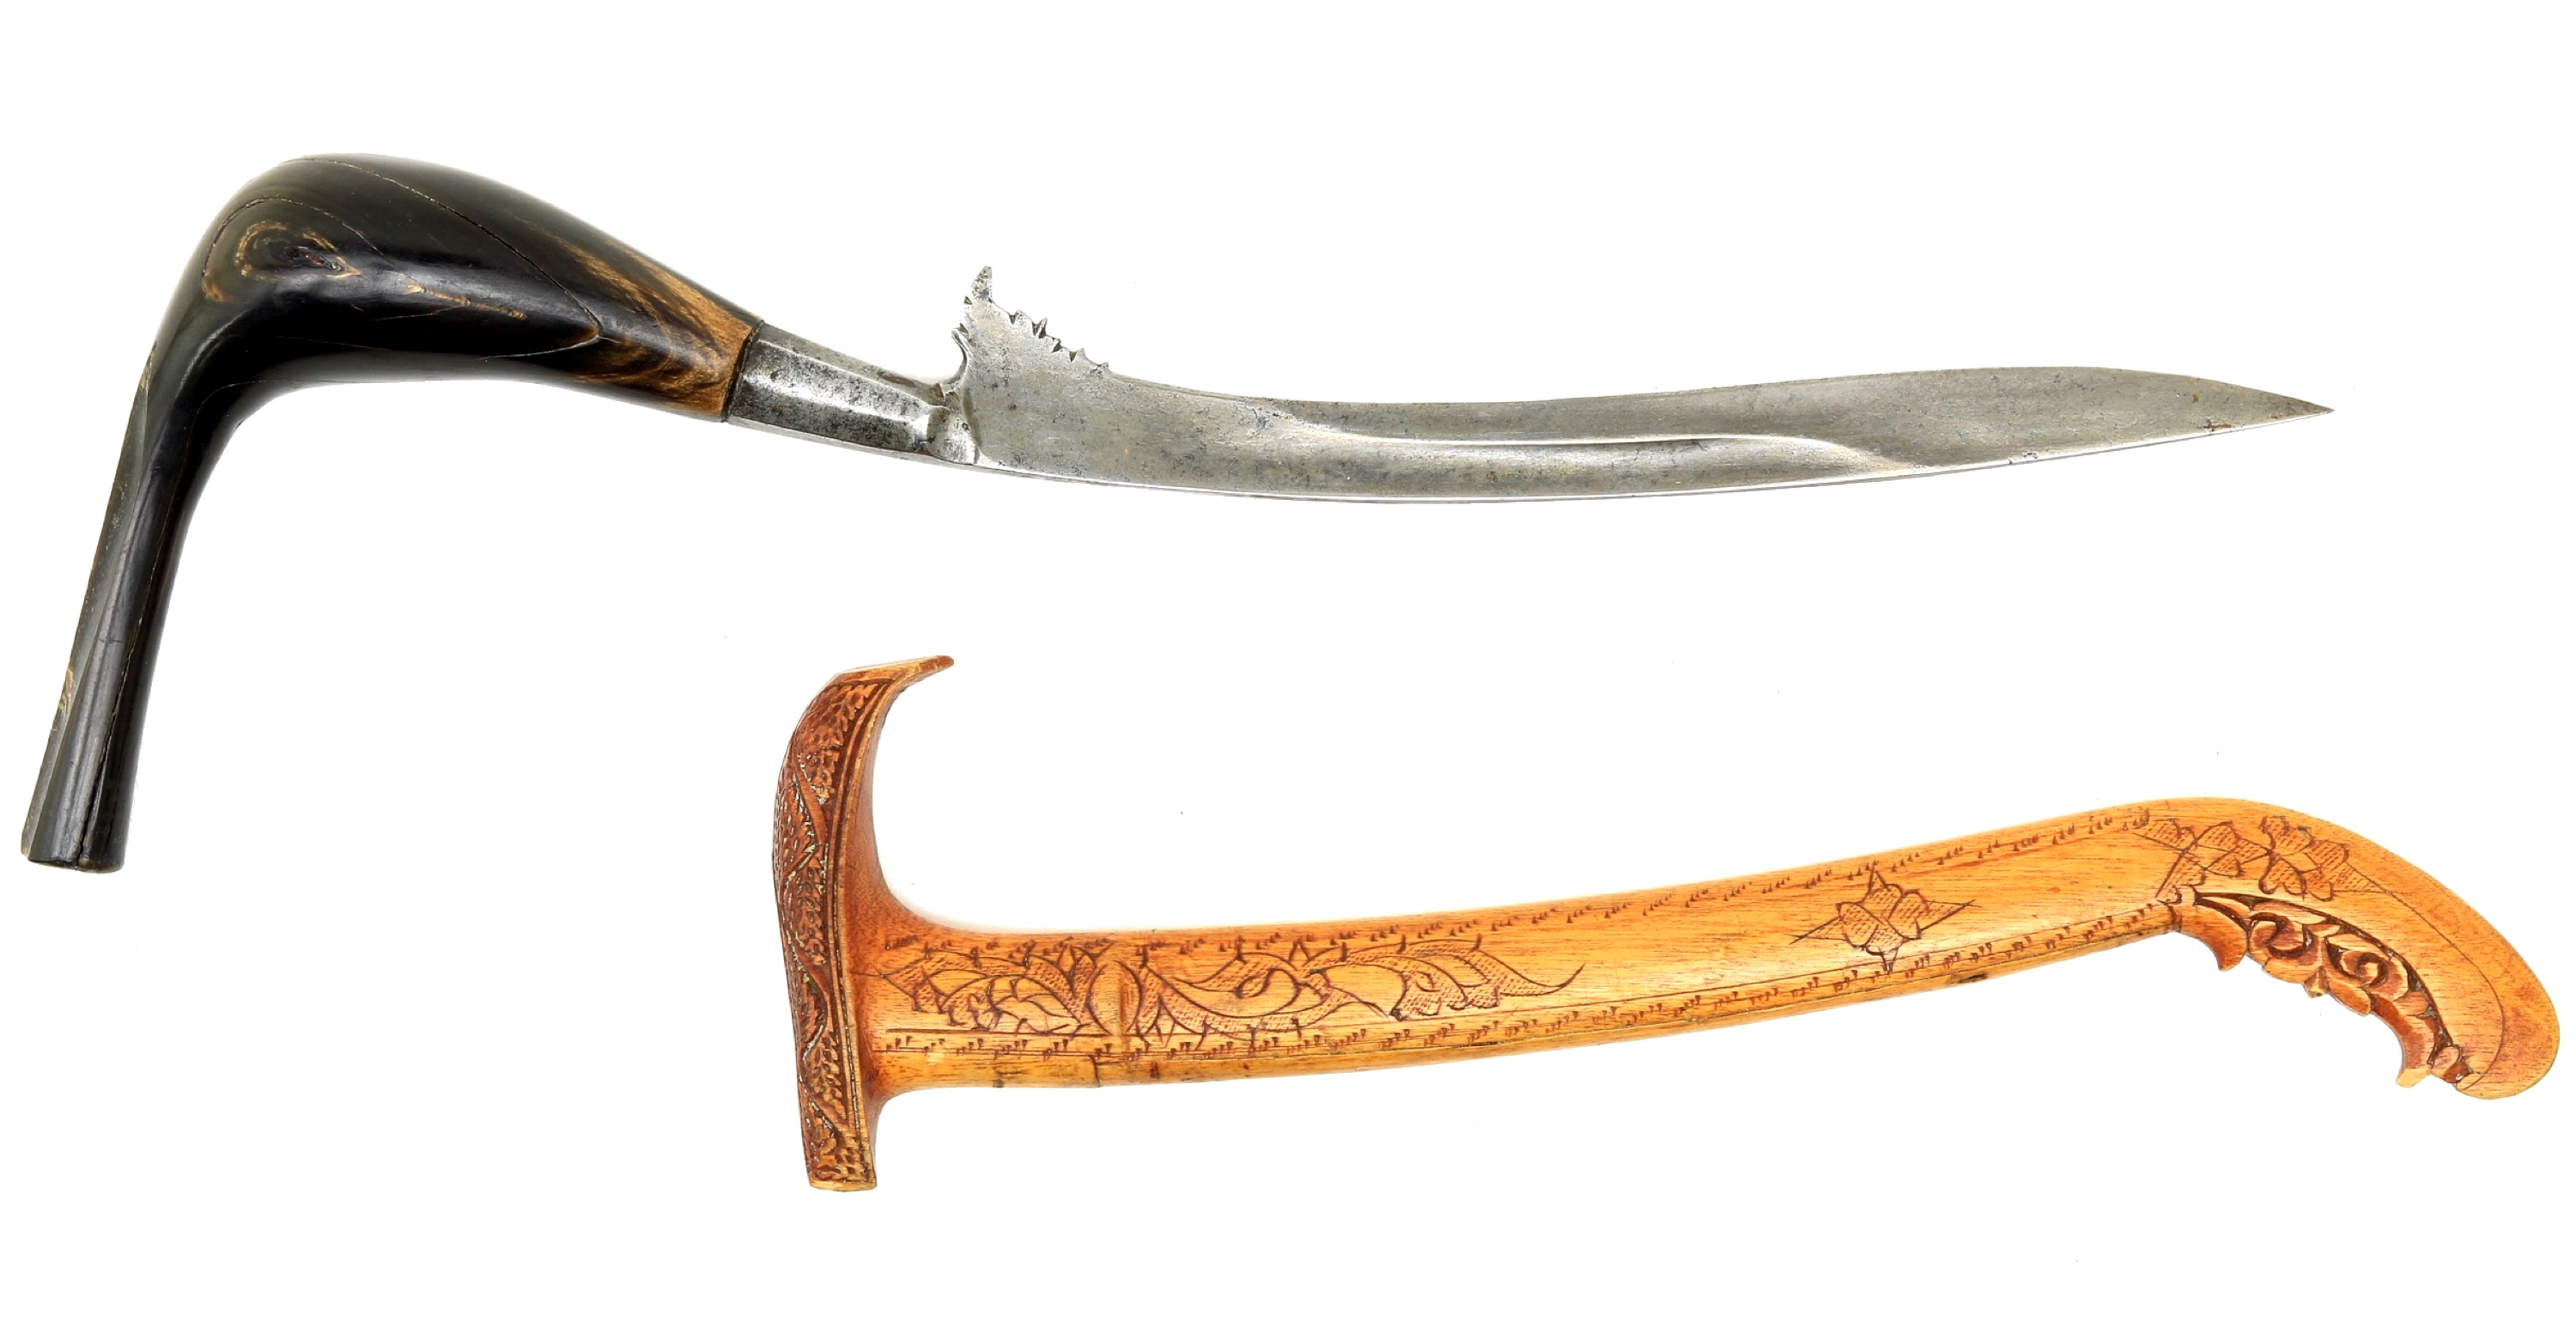 A rencong dagger from Aceh